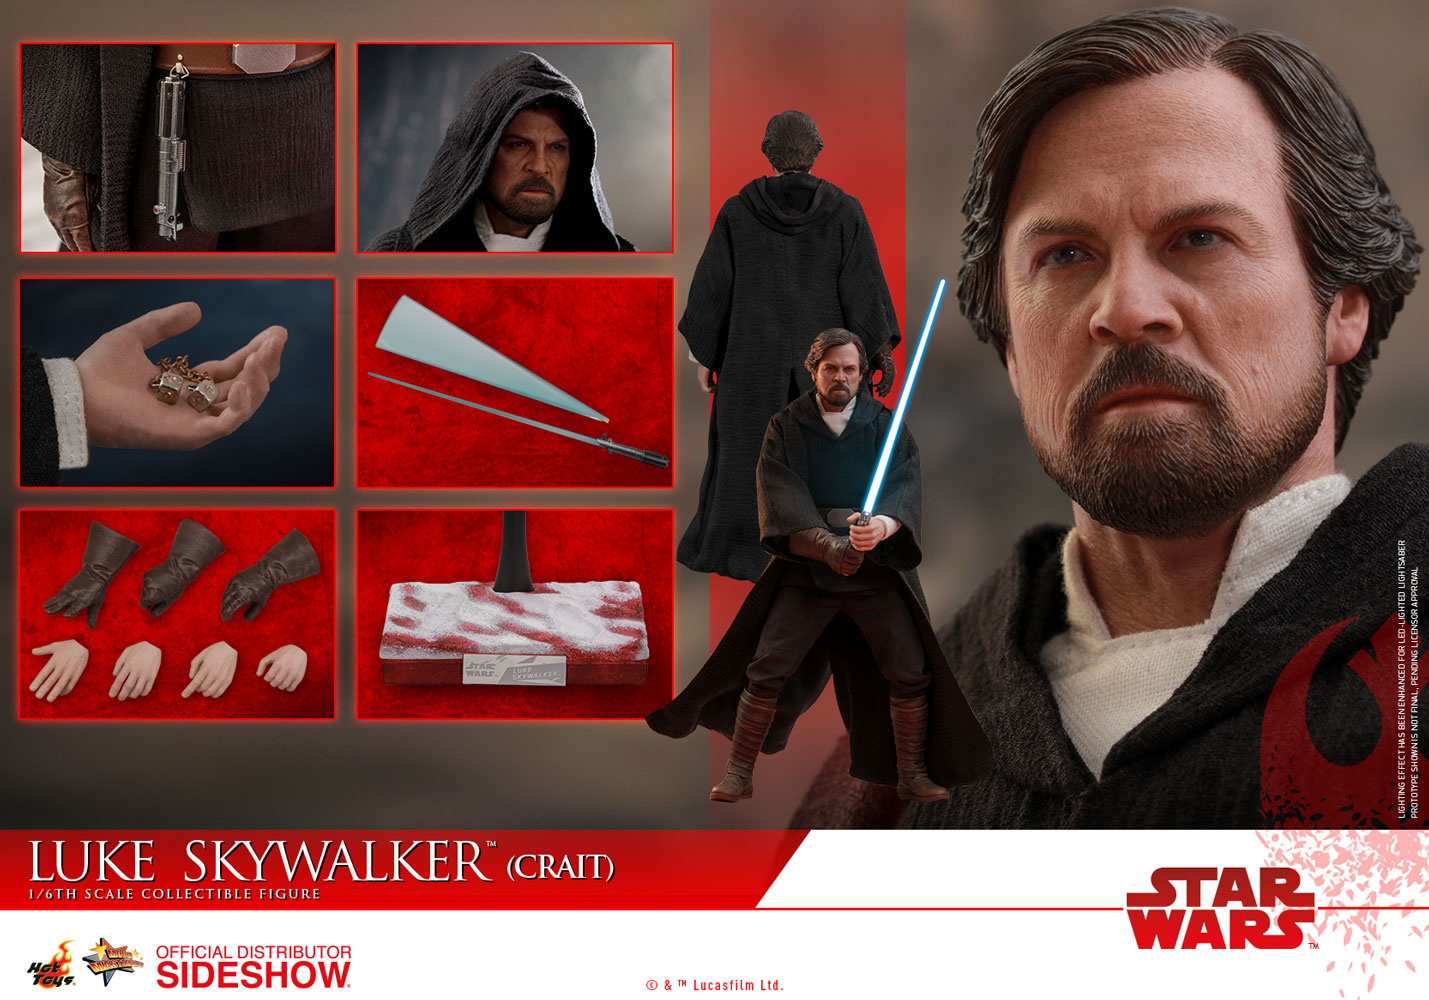 Star Wars - Episode VIII - Luke Skywalker (Crait) 1/6 Scale Collectible Figure - Screenshot 6